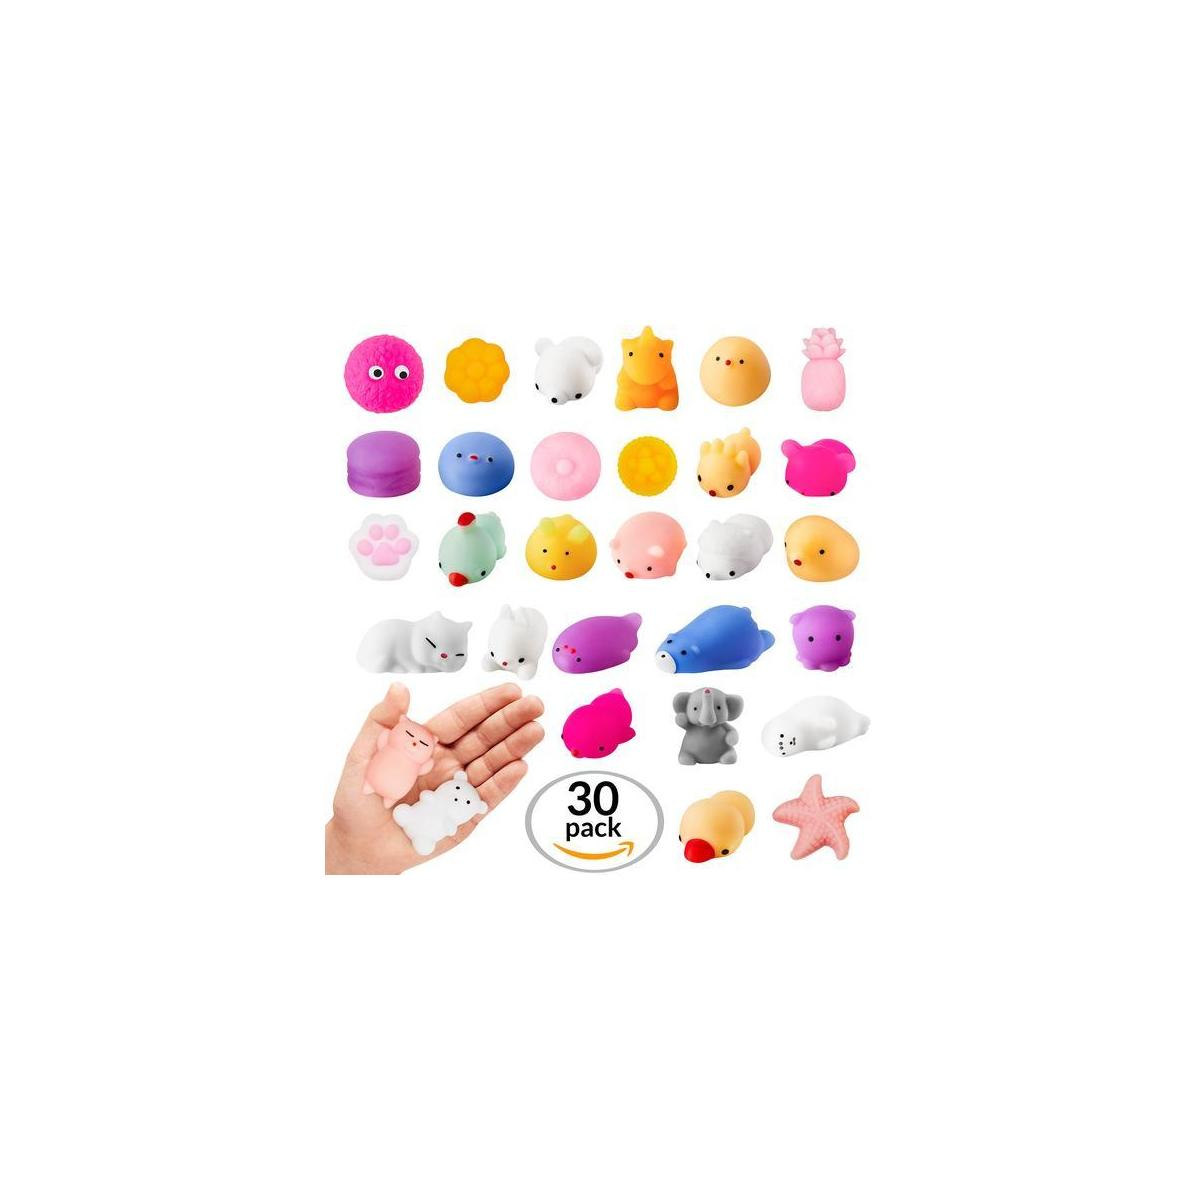 Coral Entertainments Squishies Toys 30 Pack Kawaii Squishy Set Mini Soft Squeezable Sensory Fidget Toys Slow Rising Decoration and Stress Relief